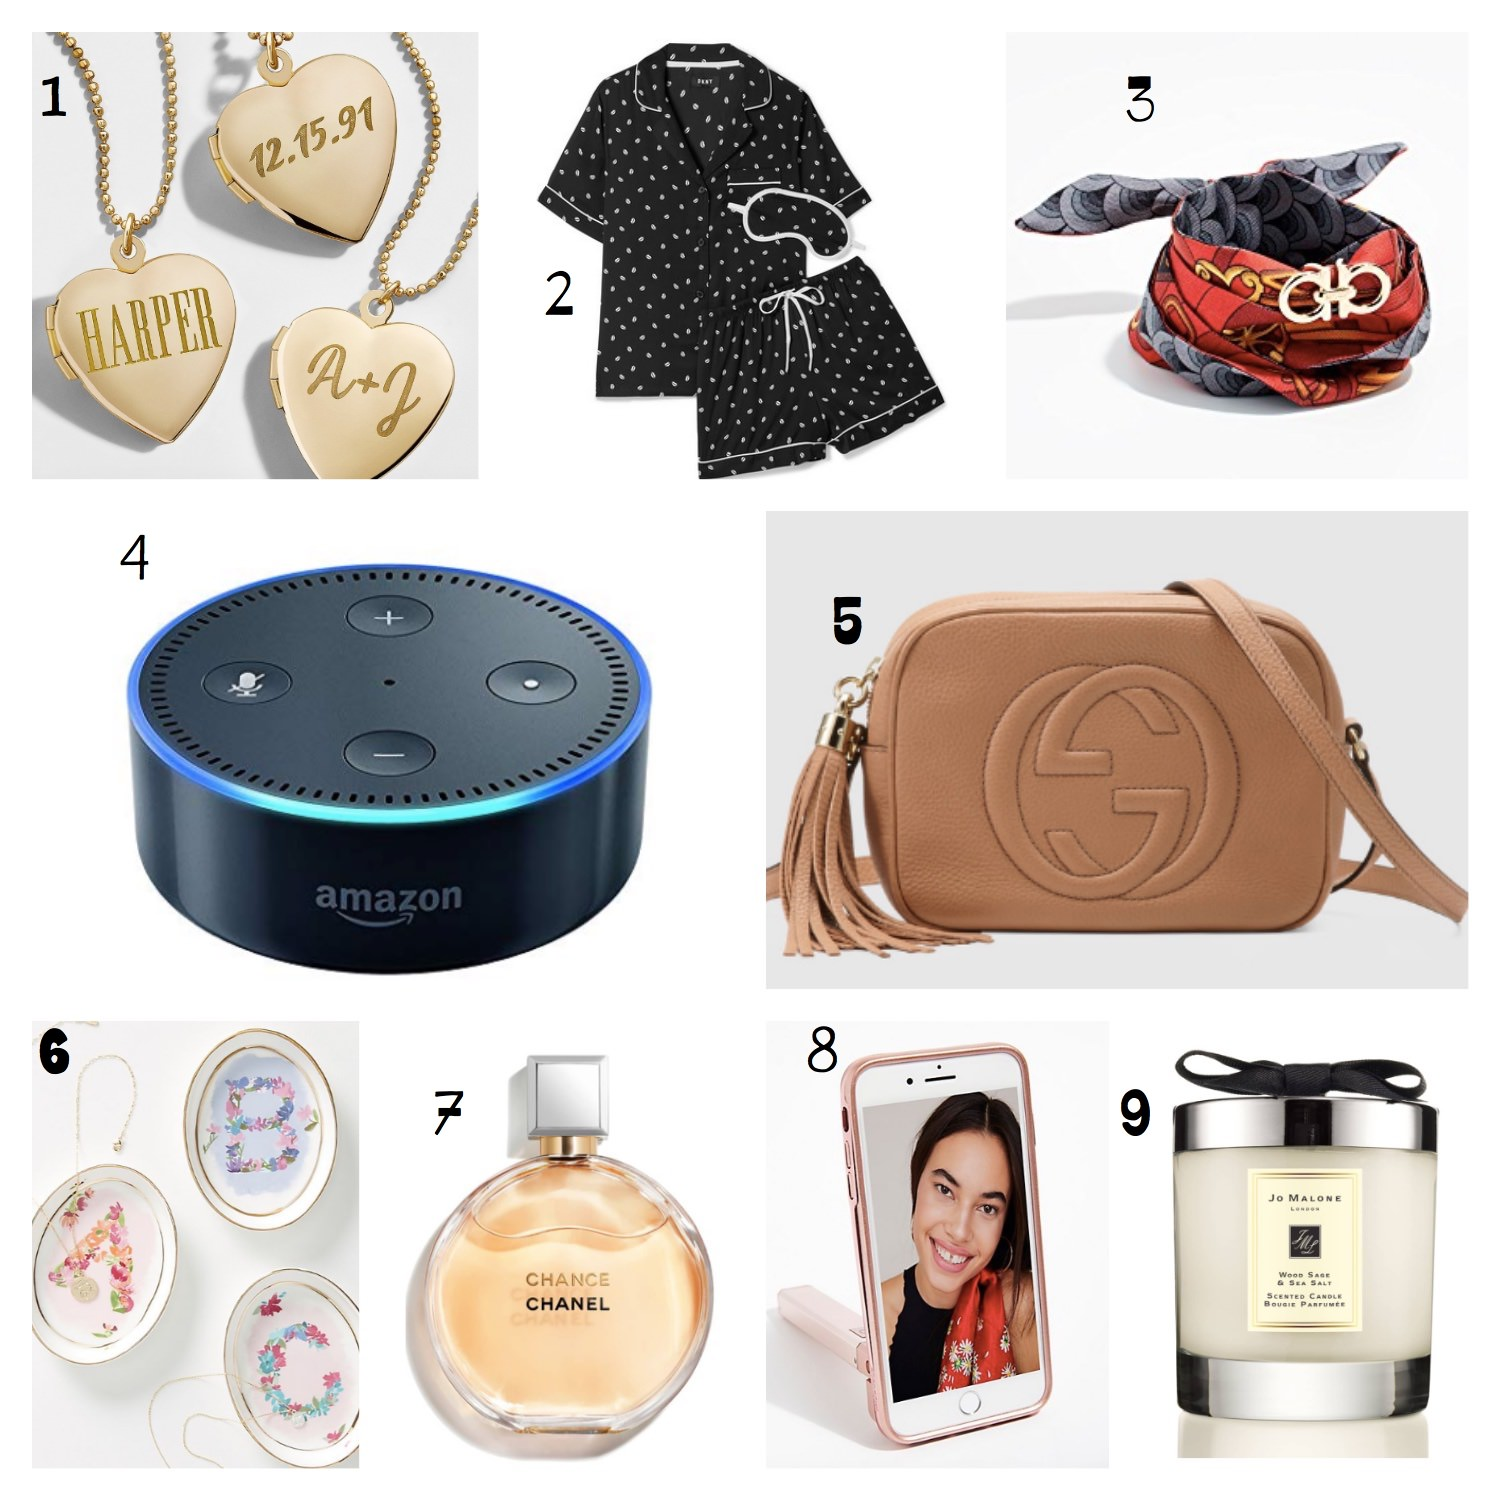 Valentine's Day Gift Guide For Her 2019 | TrufflesandTrends.com